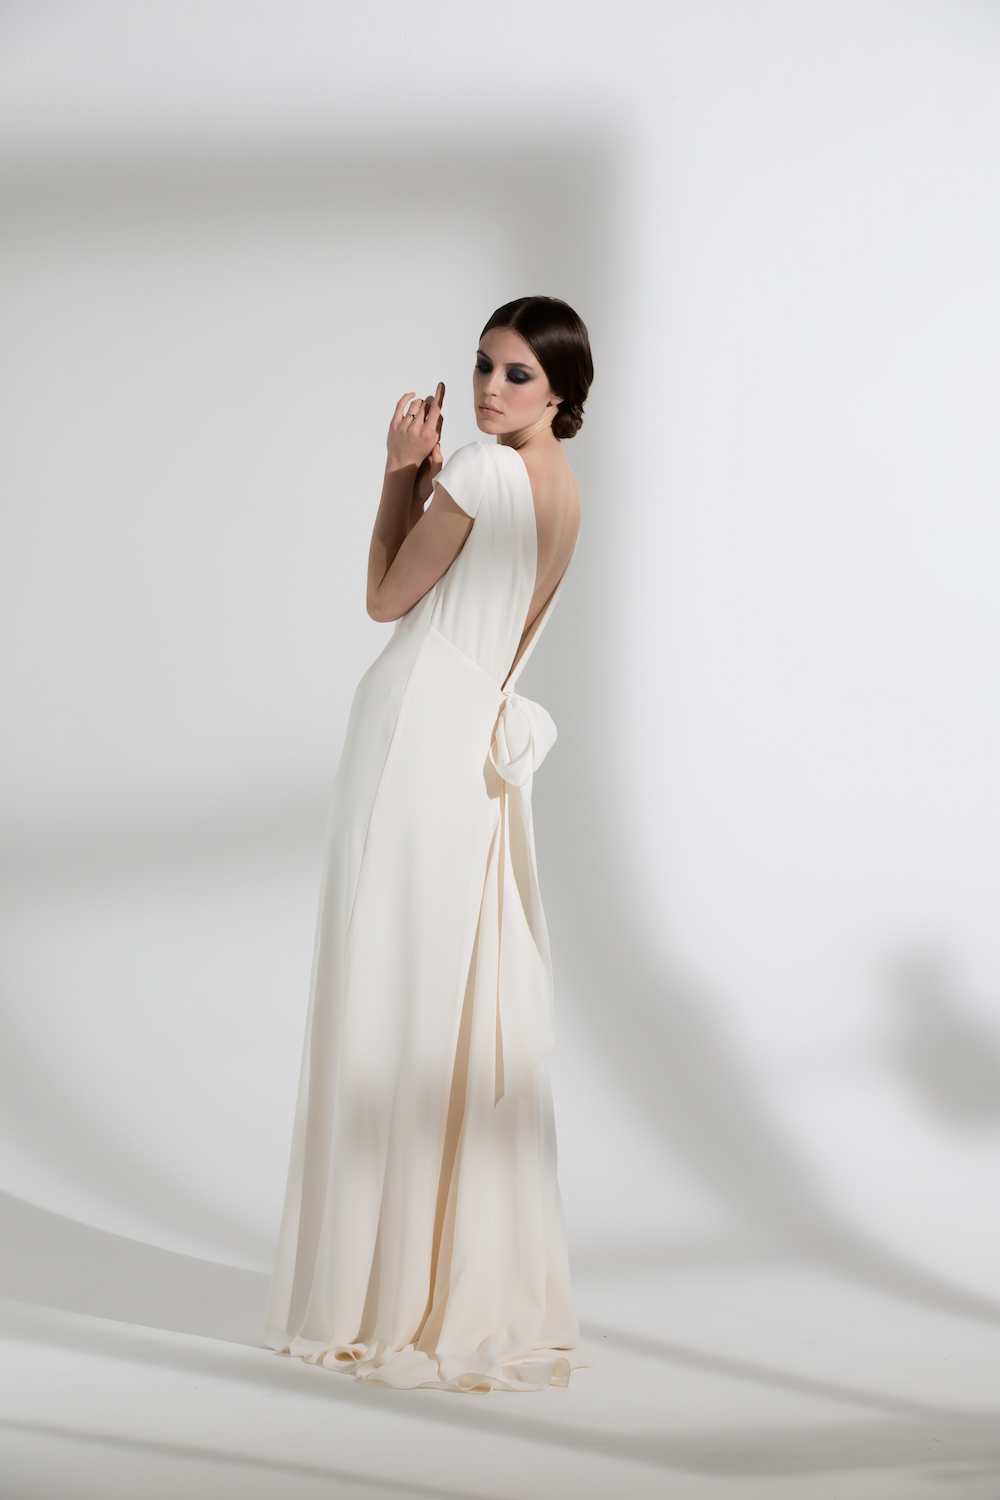 Fern low back dress with cap sleeves | Wedding dress by Halfpenny London